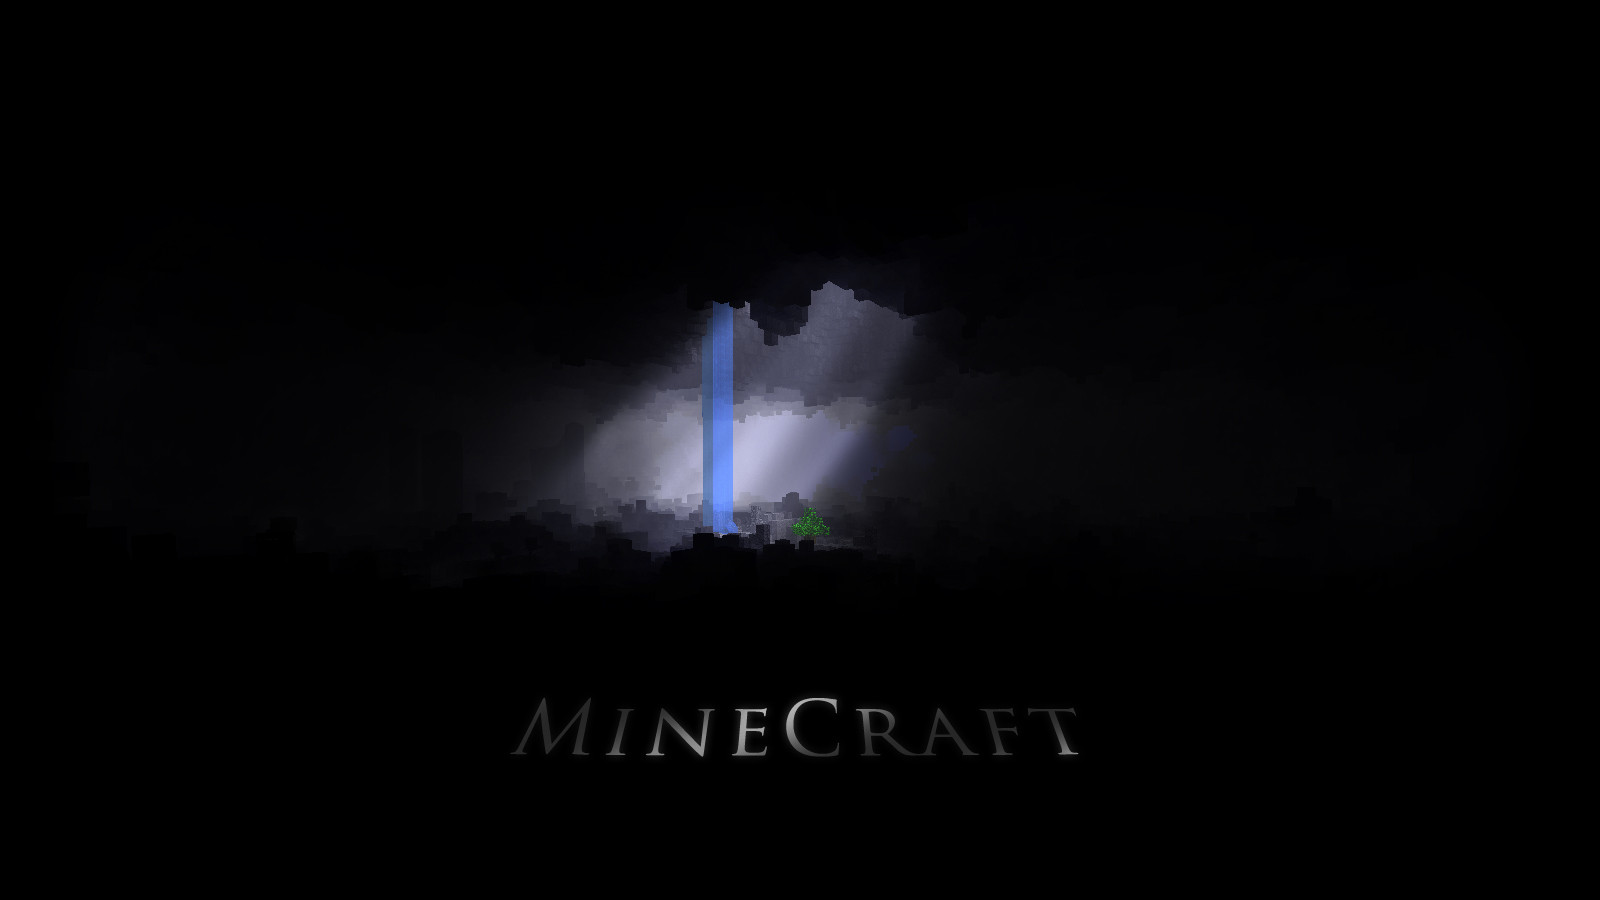 Sebastians Playground Four awesome Minecraft wallpapers 1600x900